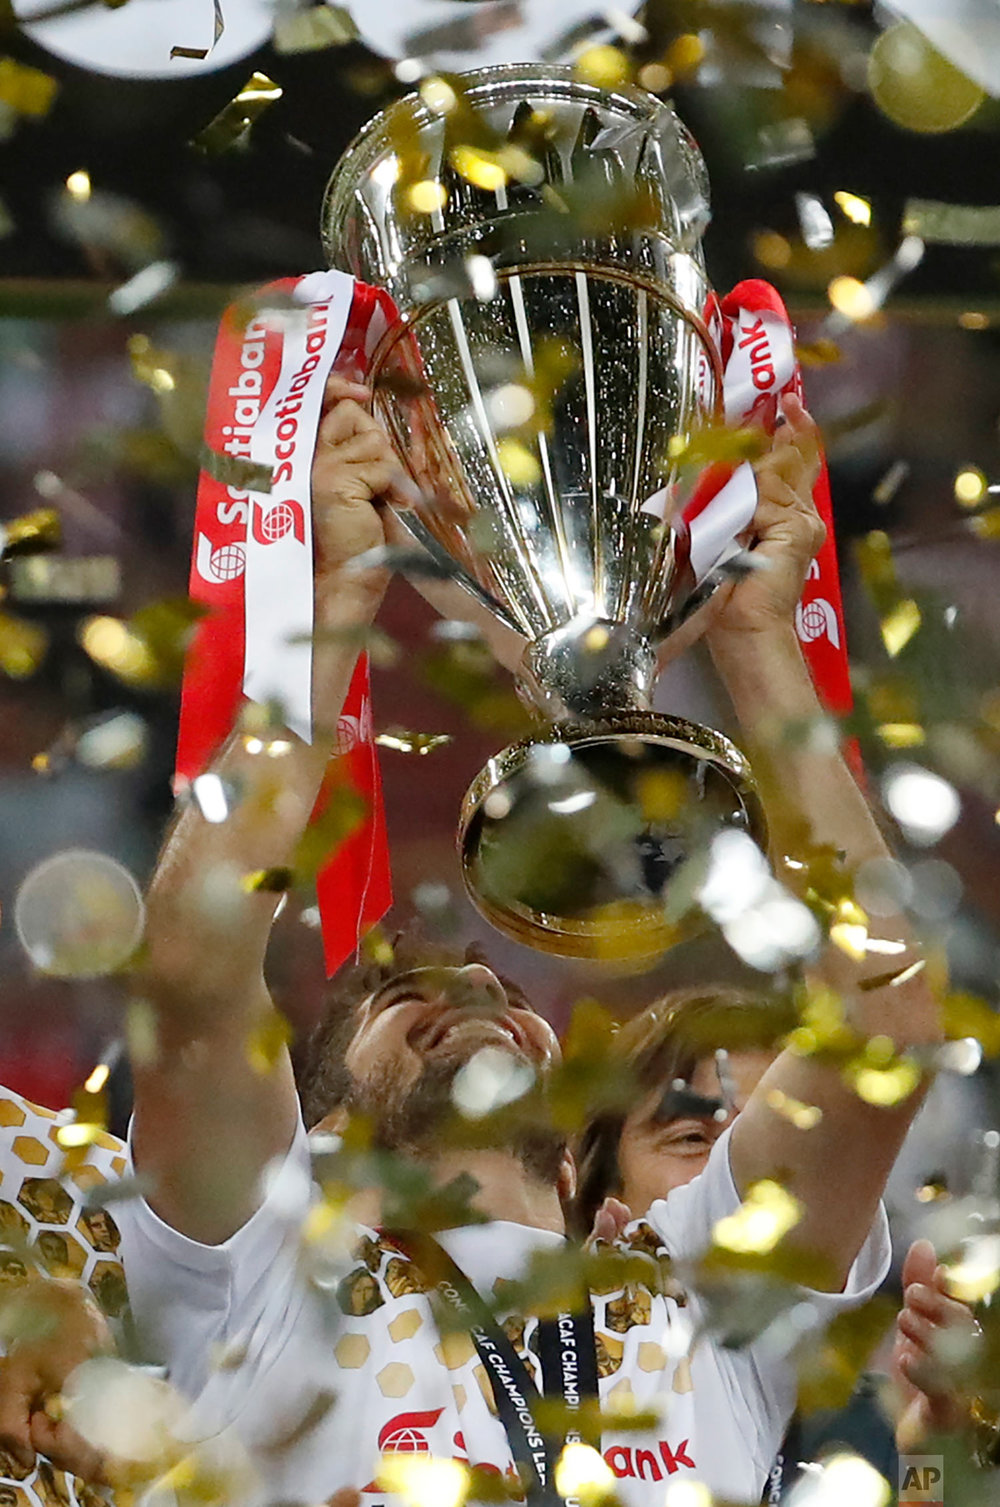 Chivas' Jair Pereira holds the trophy aloft as he celebrates his team's victory over Toronto FC in the CONCACAF Champions League final soccer match, in Guadalajara, Mexico, Wednesday, April 25, 2018. Chivas defeated Toronto FC in a penalty shoot out. (AP Photo/Eduardo Verdugo)